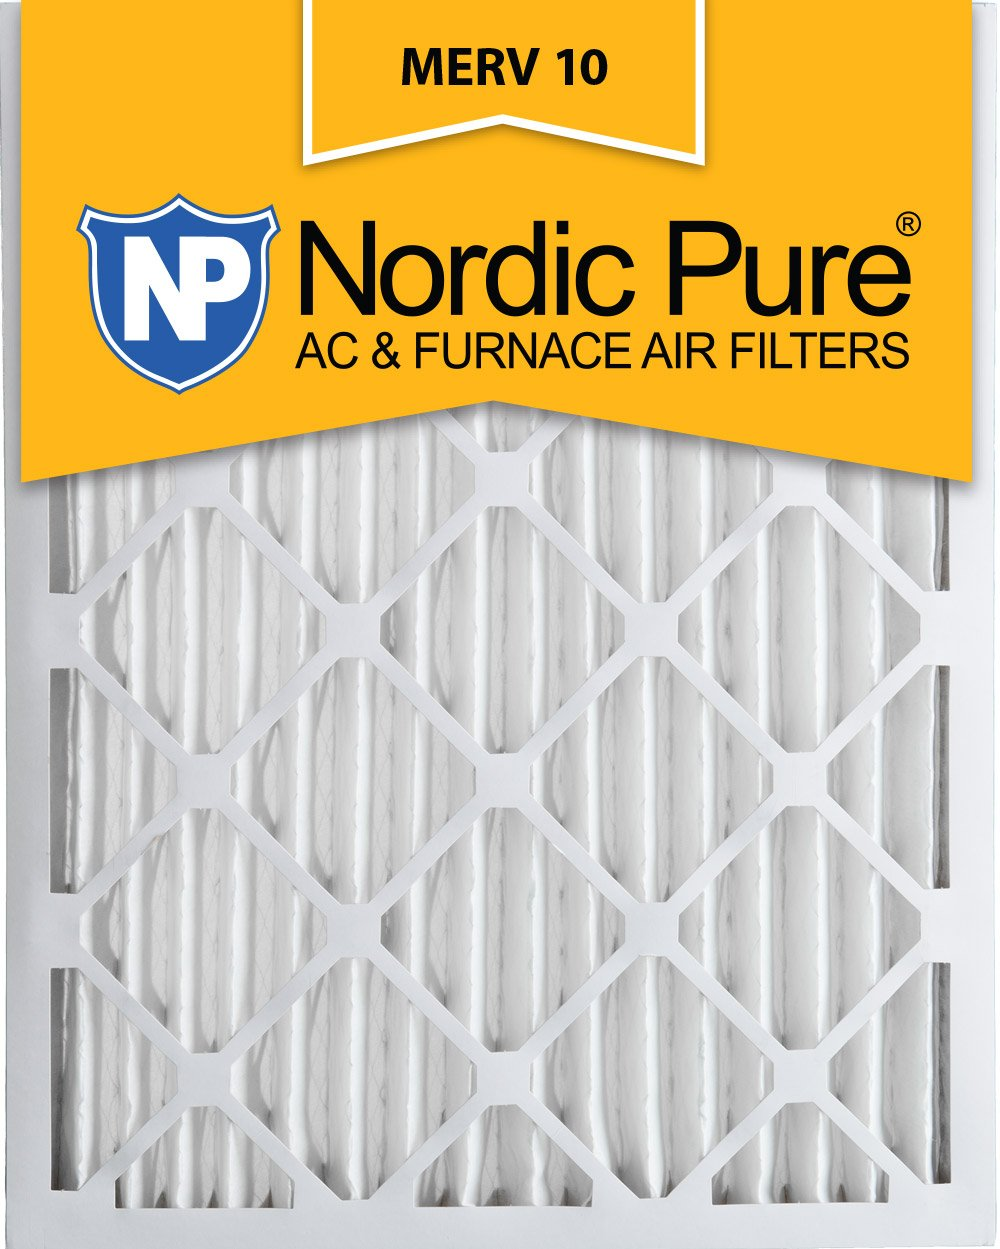 Ac Filters Orlando Nordic Pure 20x25x2 Merv 10 Pleated Ac Furnace Air Filter Box Of